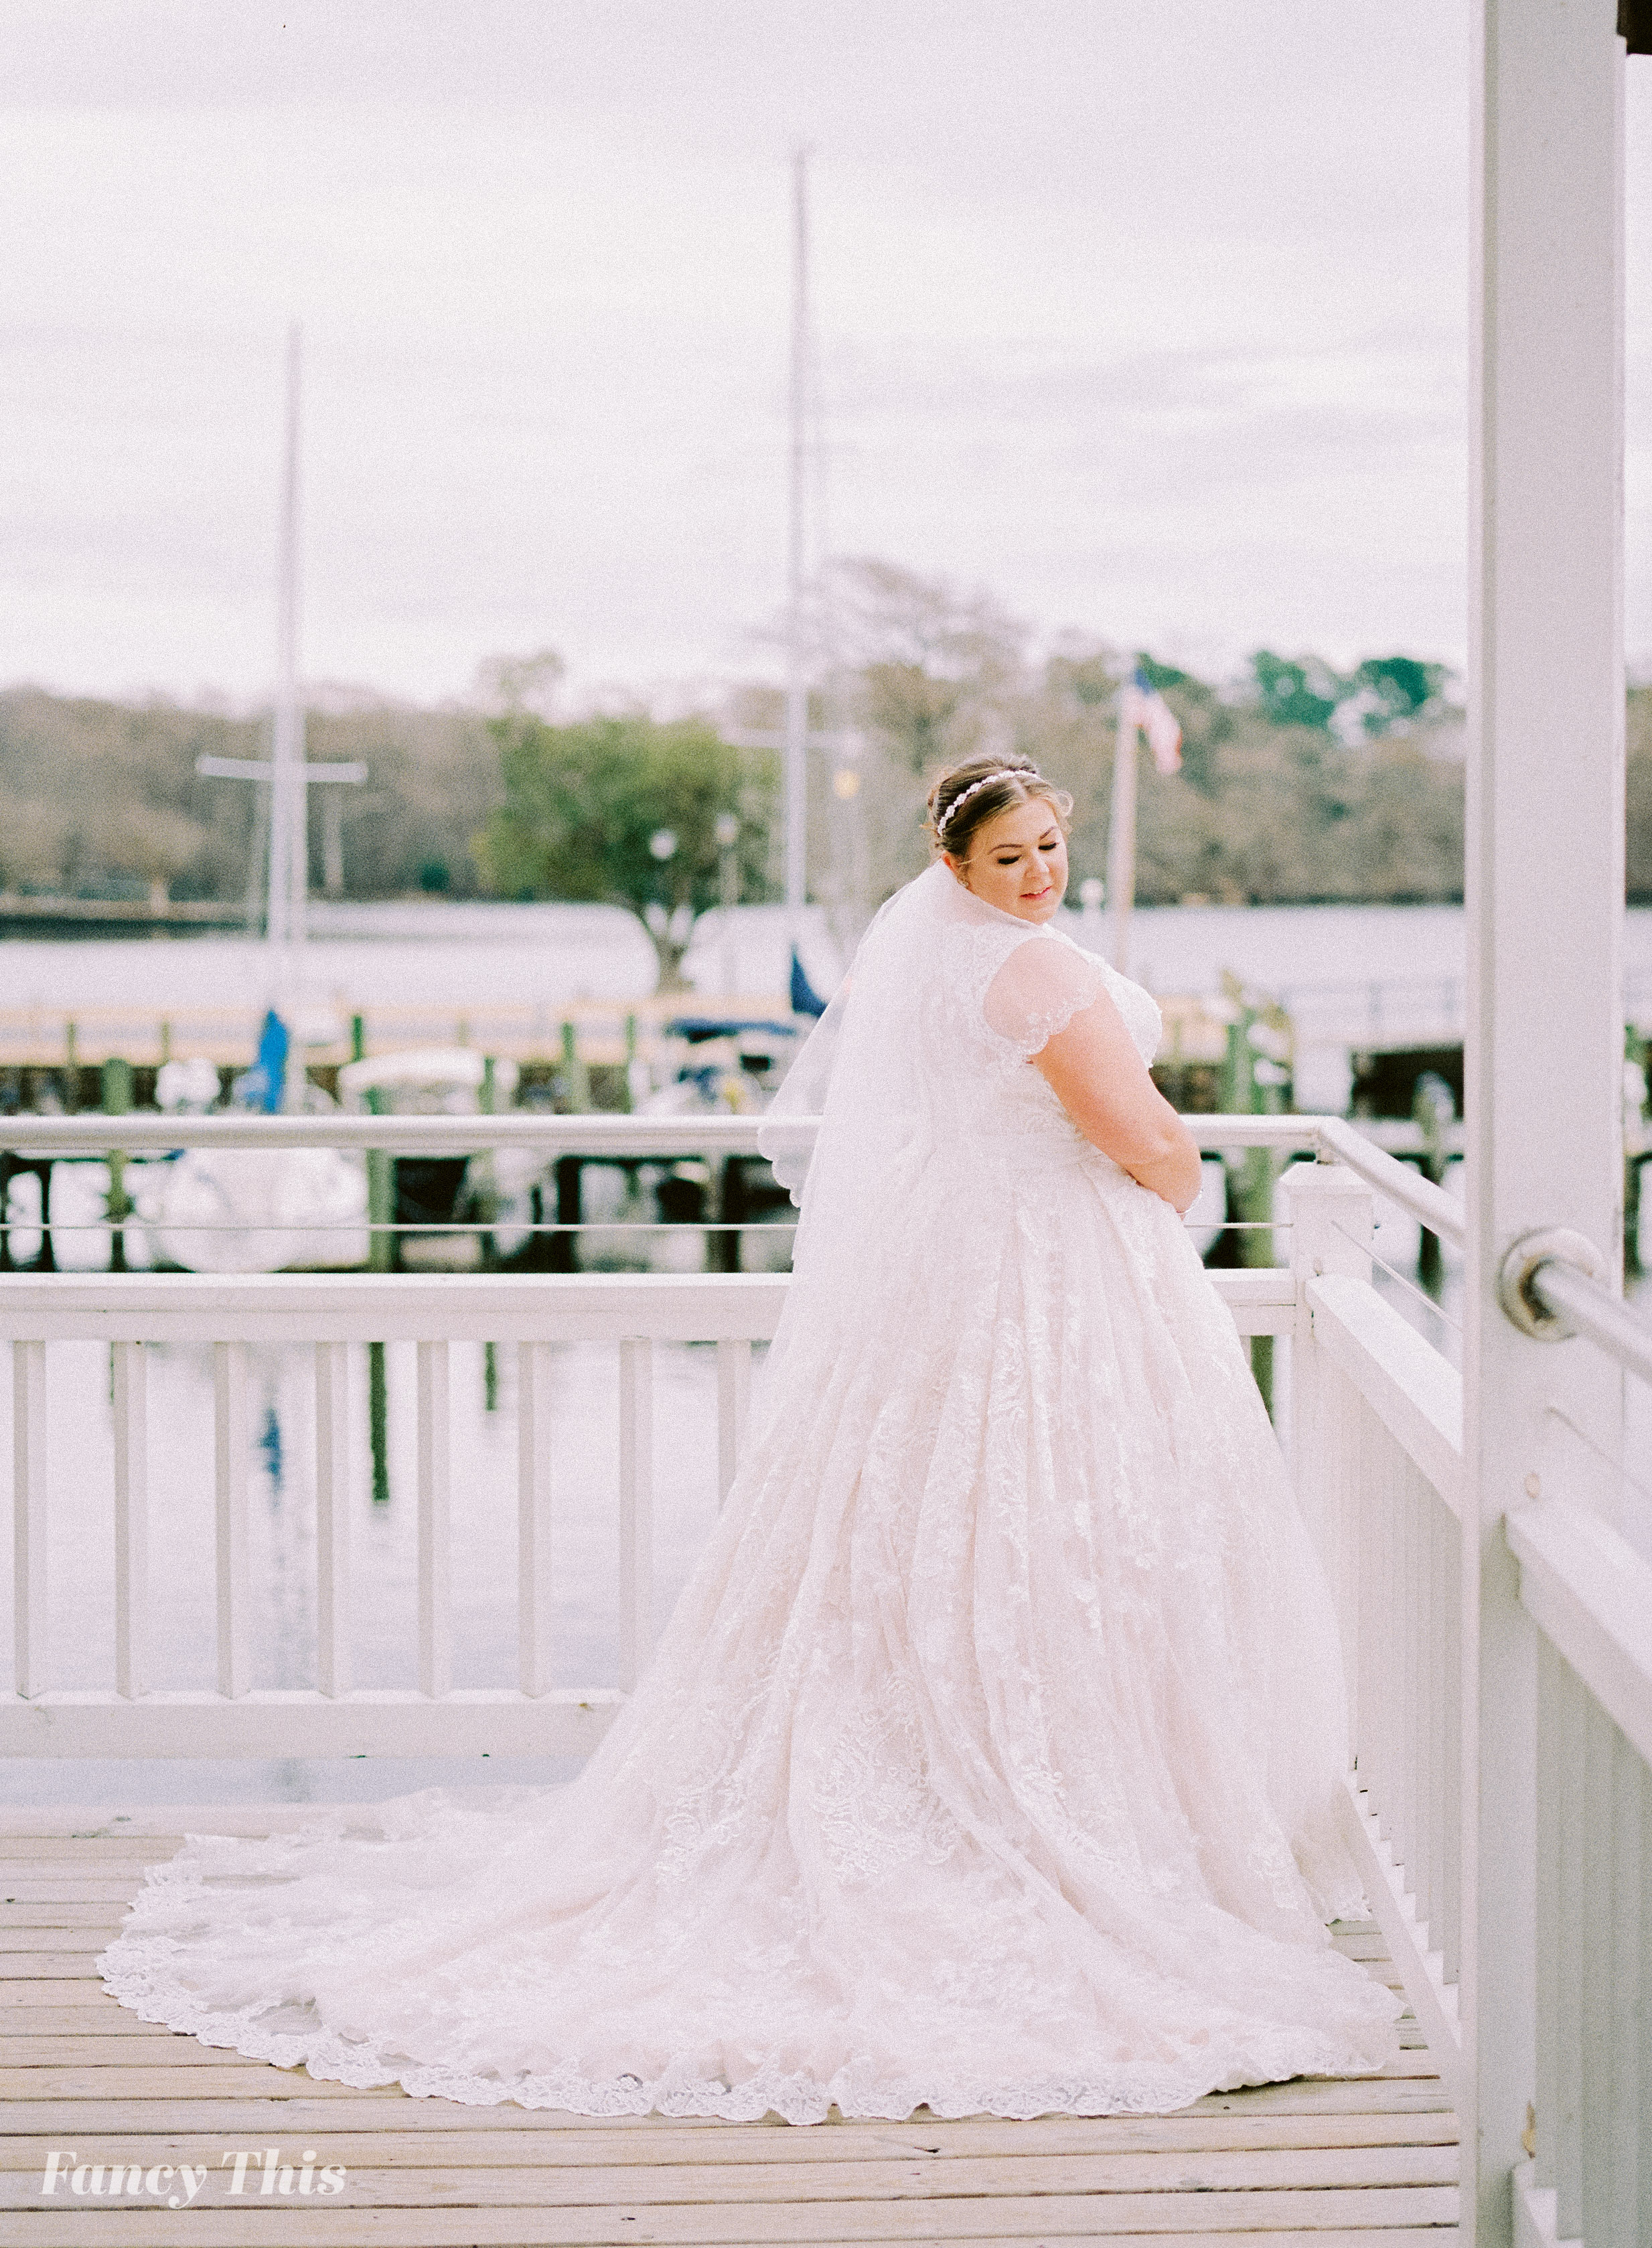 edentonwedding_edentonbridalsession_fancythis-130.jpg